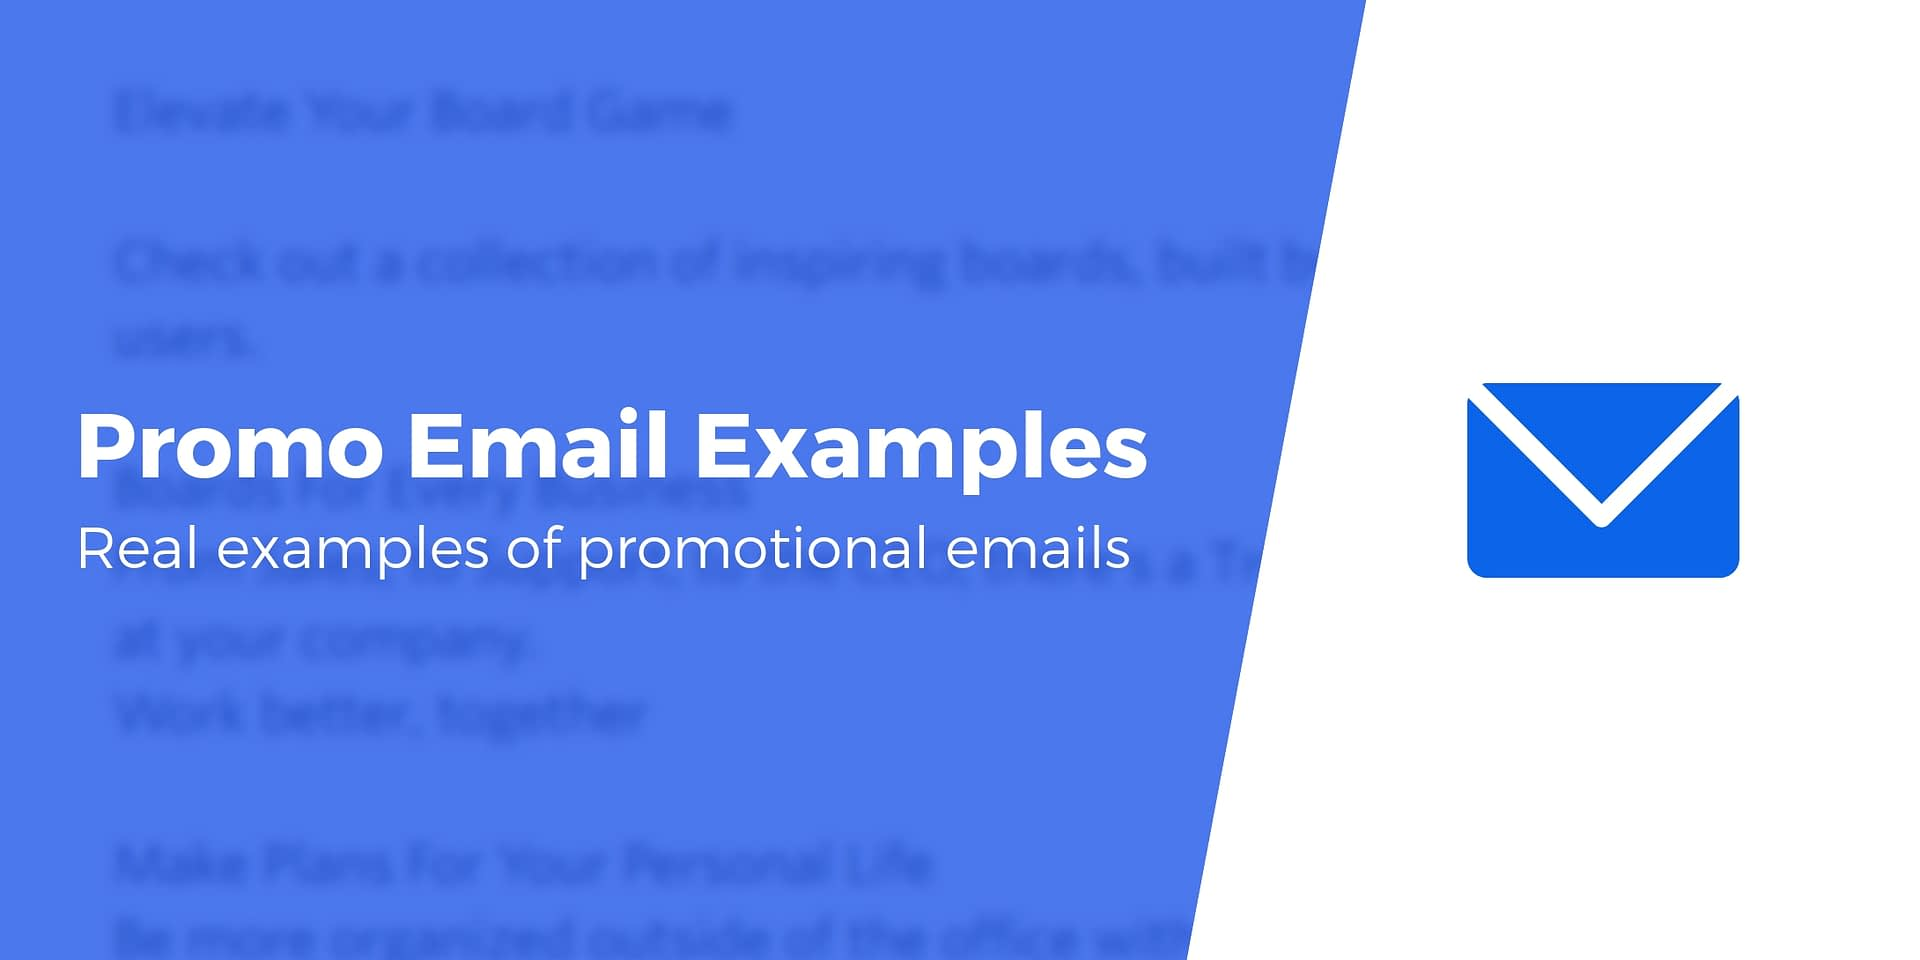 5 Great Promotional Email Examples, Plus the Important Takeaways